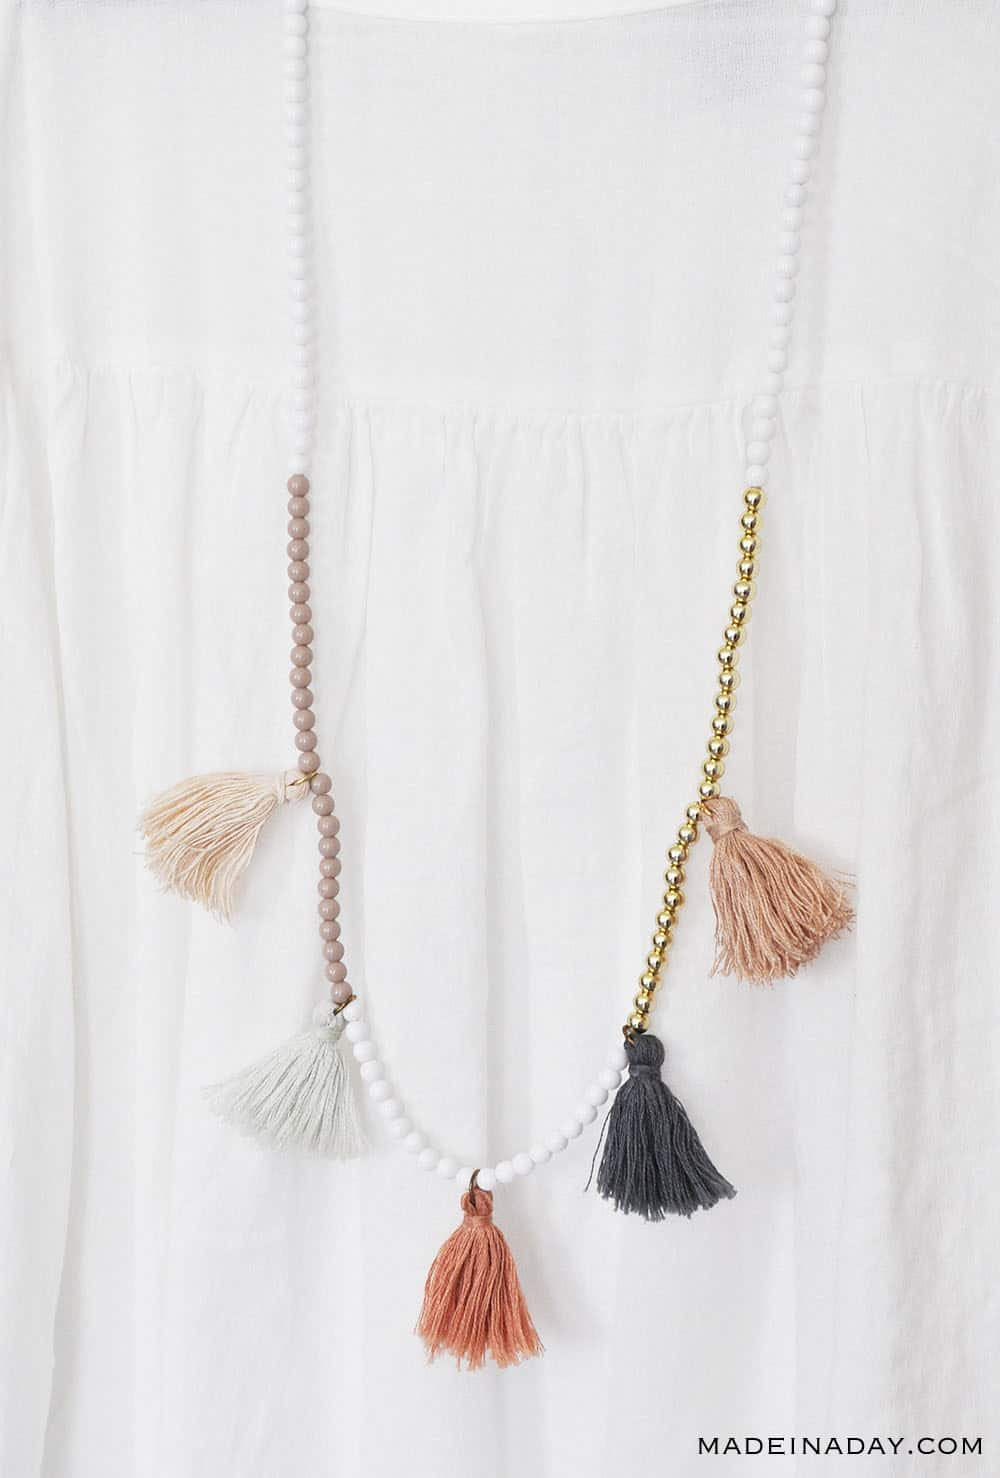 Peach, coral, mint green, and navy tassel necklaces, color block necklace